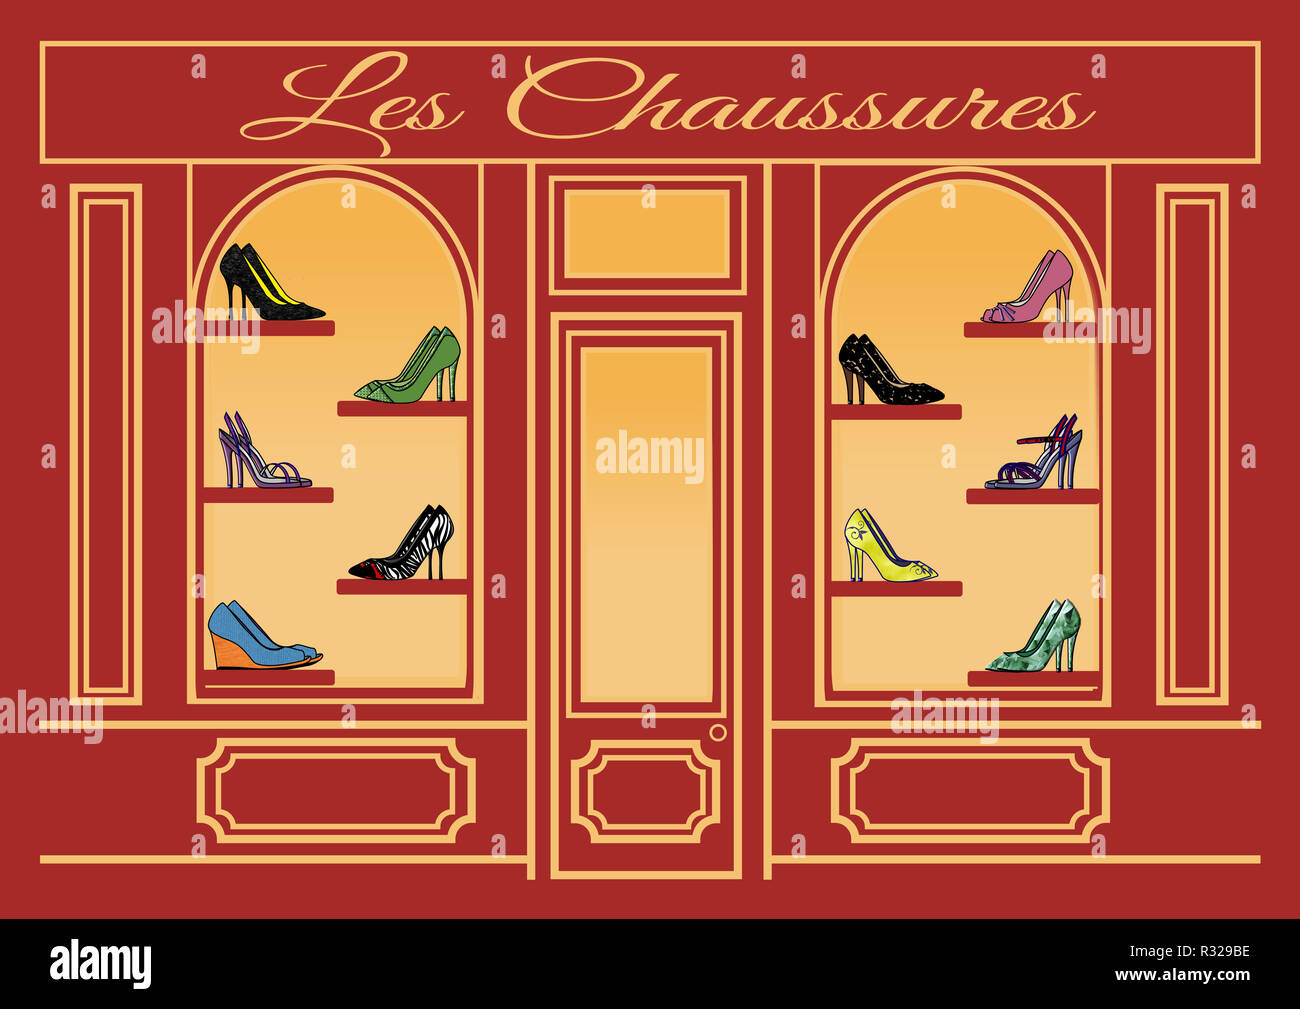 Les Chaussures - Stock Image